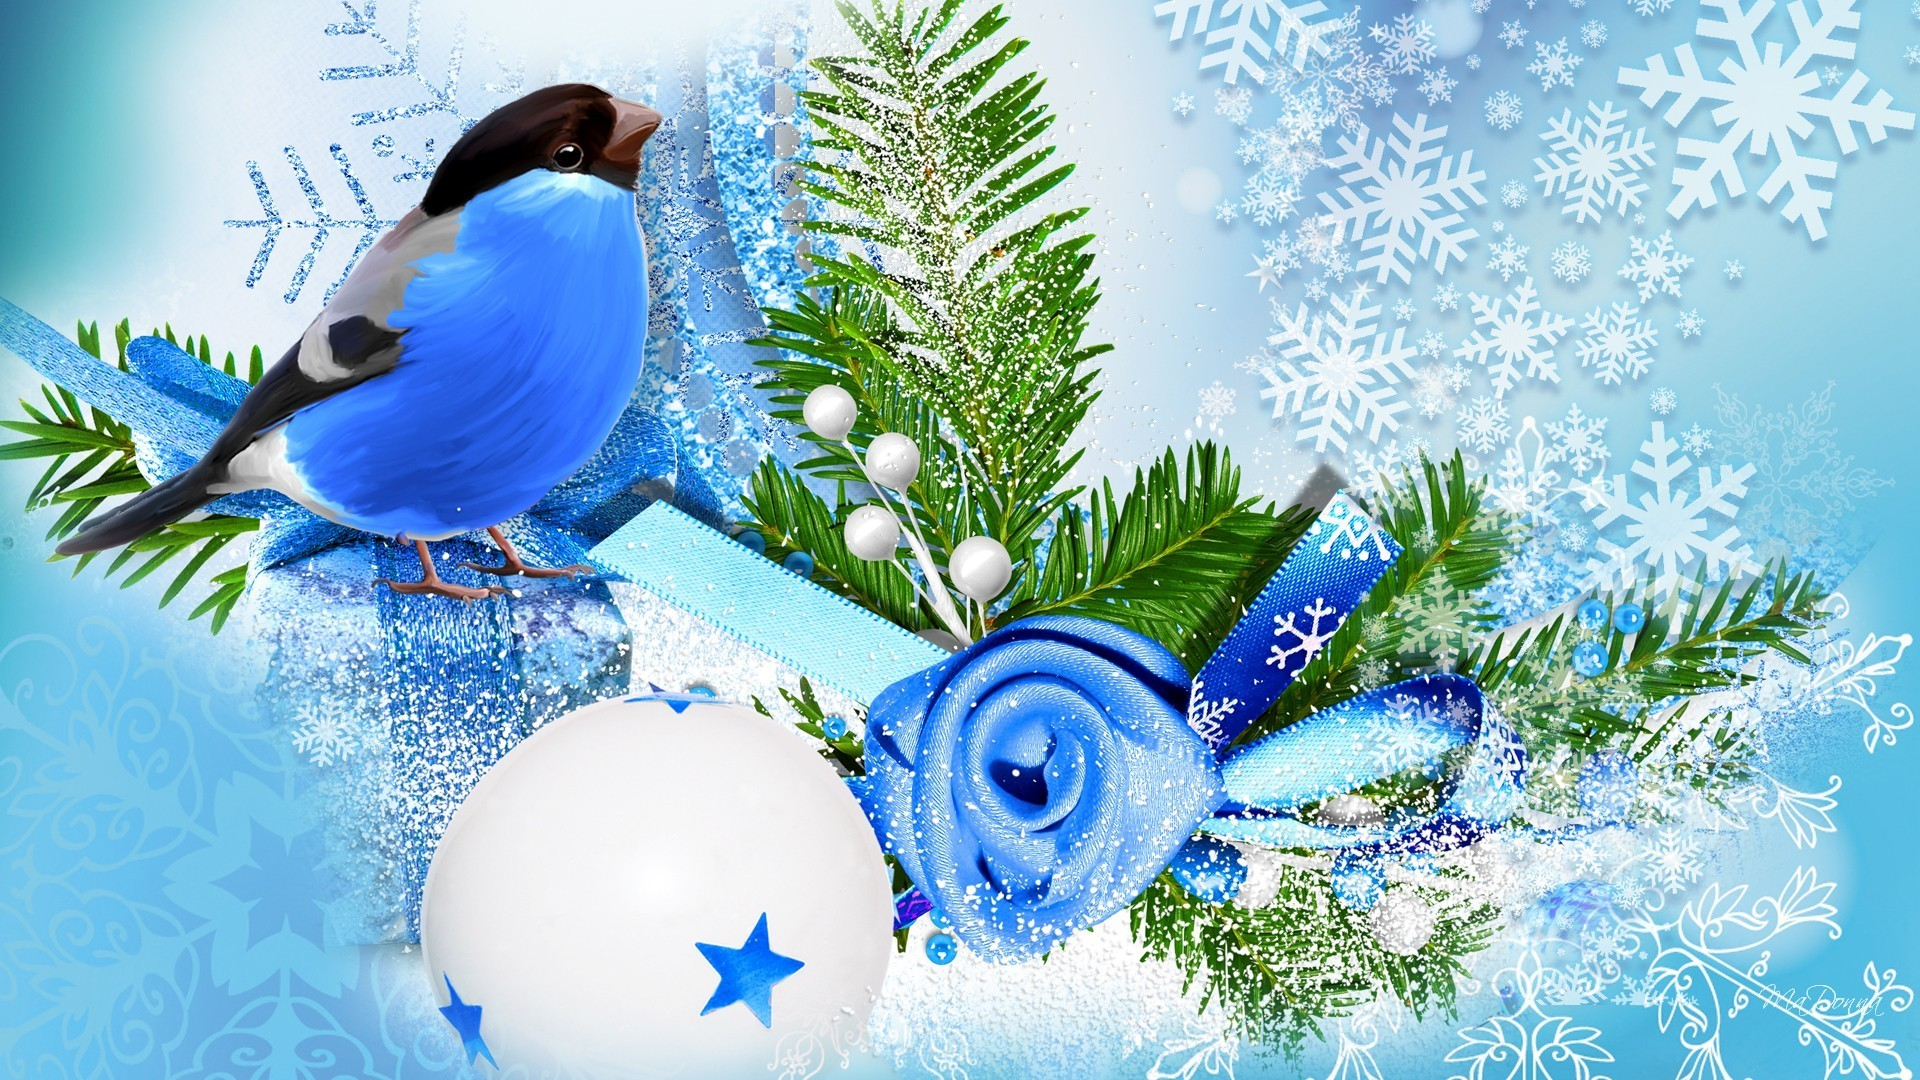 Blue bird winter season wallpaper allwallpaper 13964 pc en blue bird winter season wallpaper voltagebd Choice Image